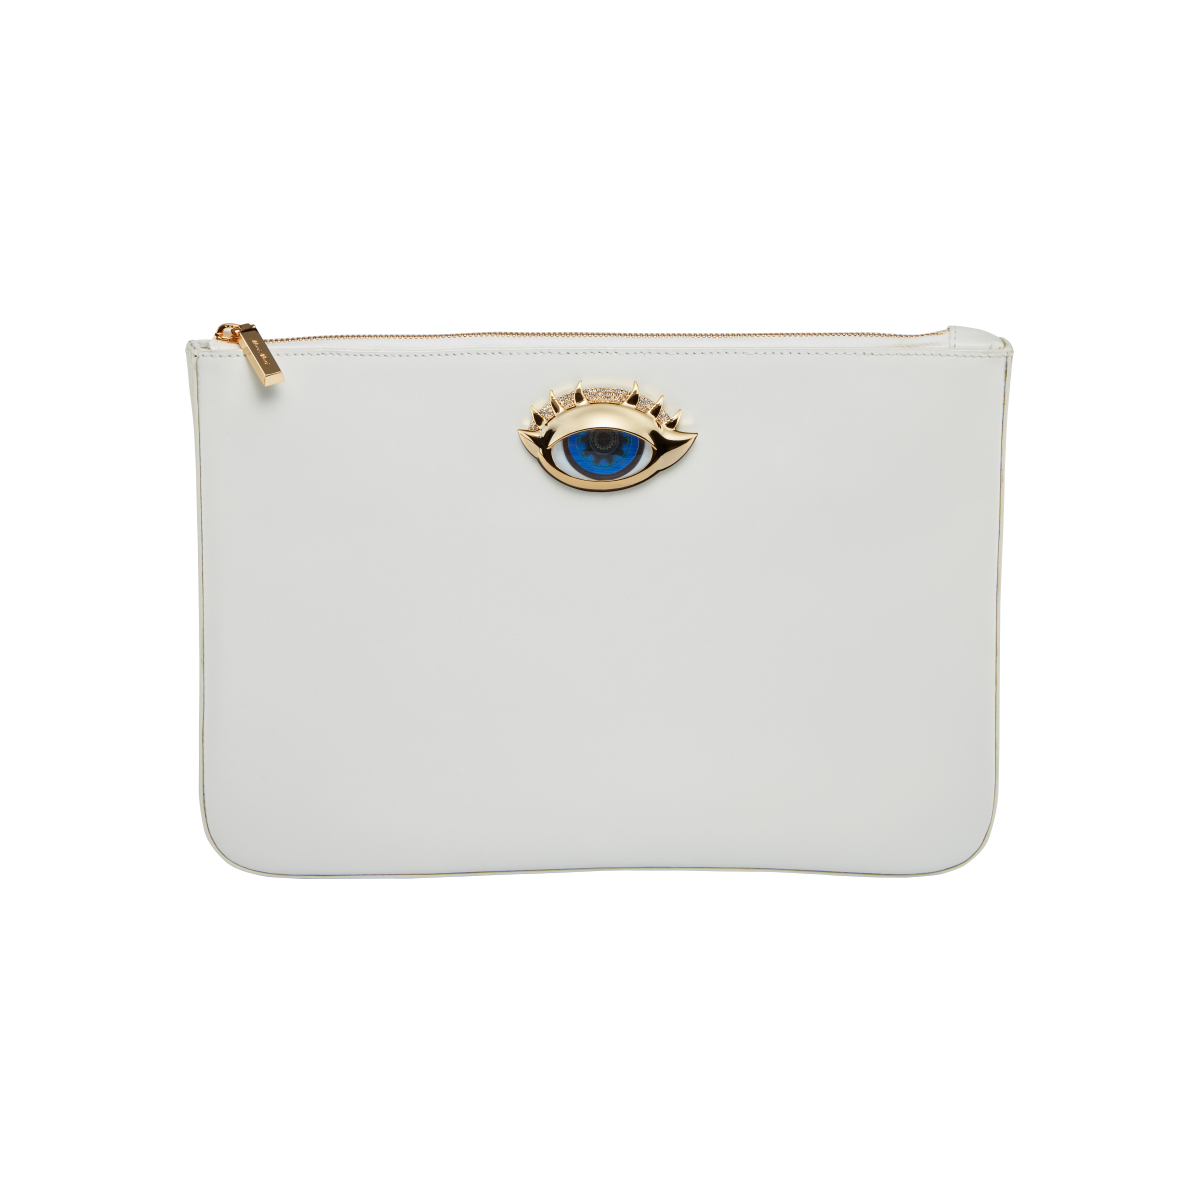 Holy White Clutch Bag